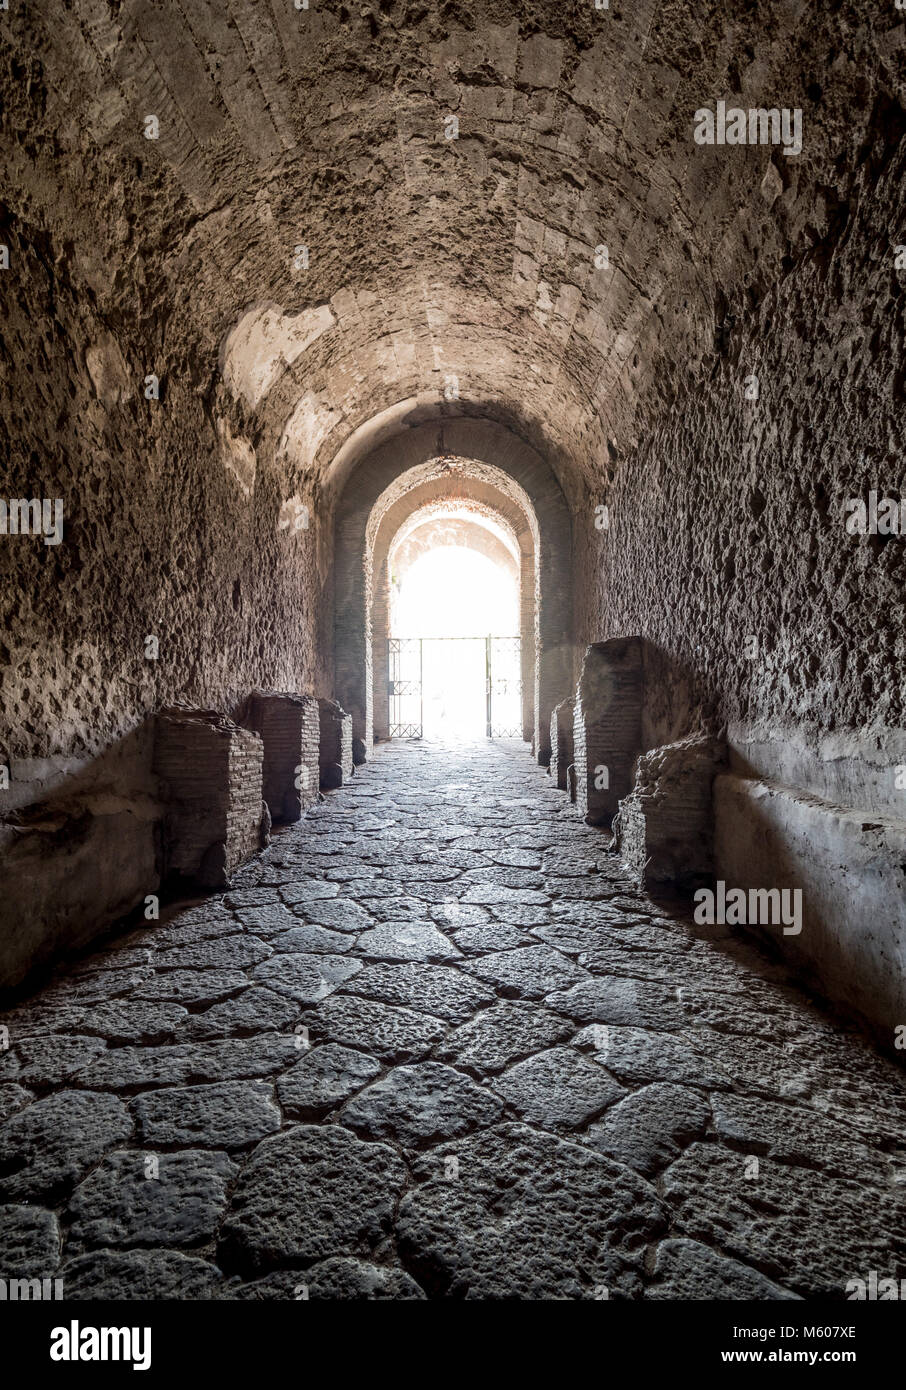 Entrance tunnel to The Amphitheatre of Pompeii, Italy. - Stock Image